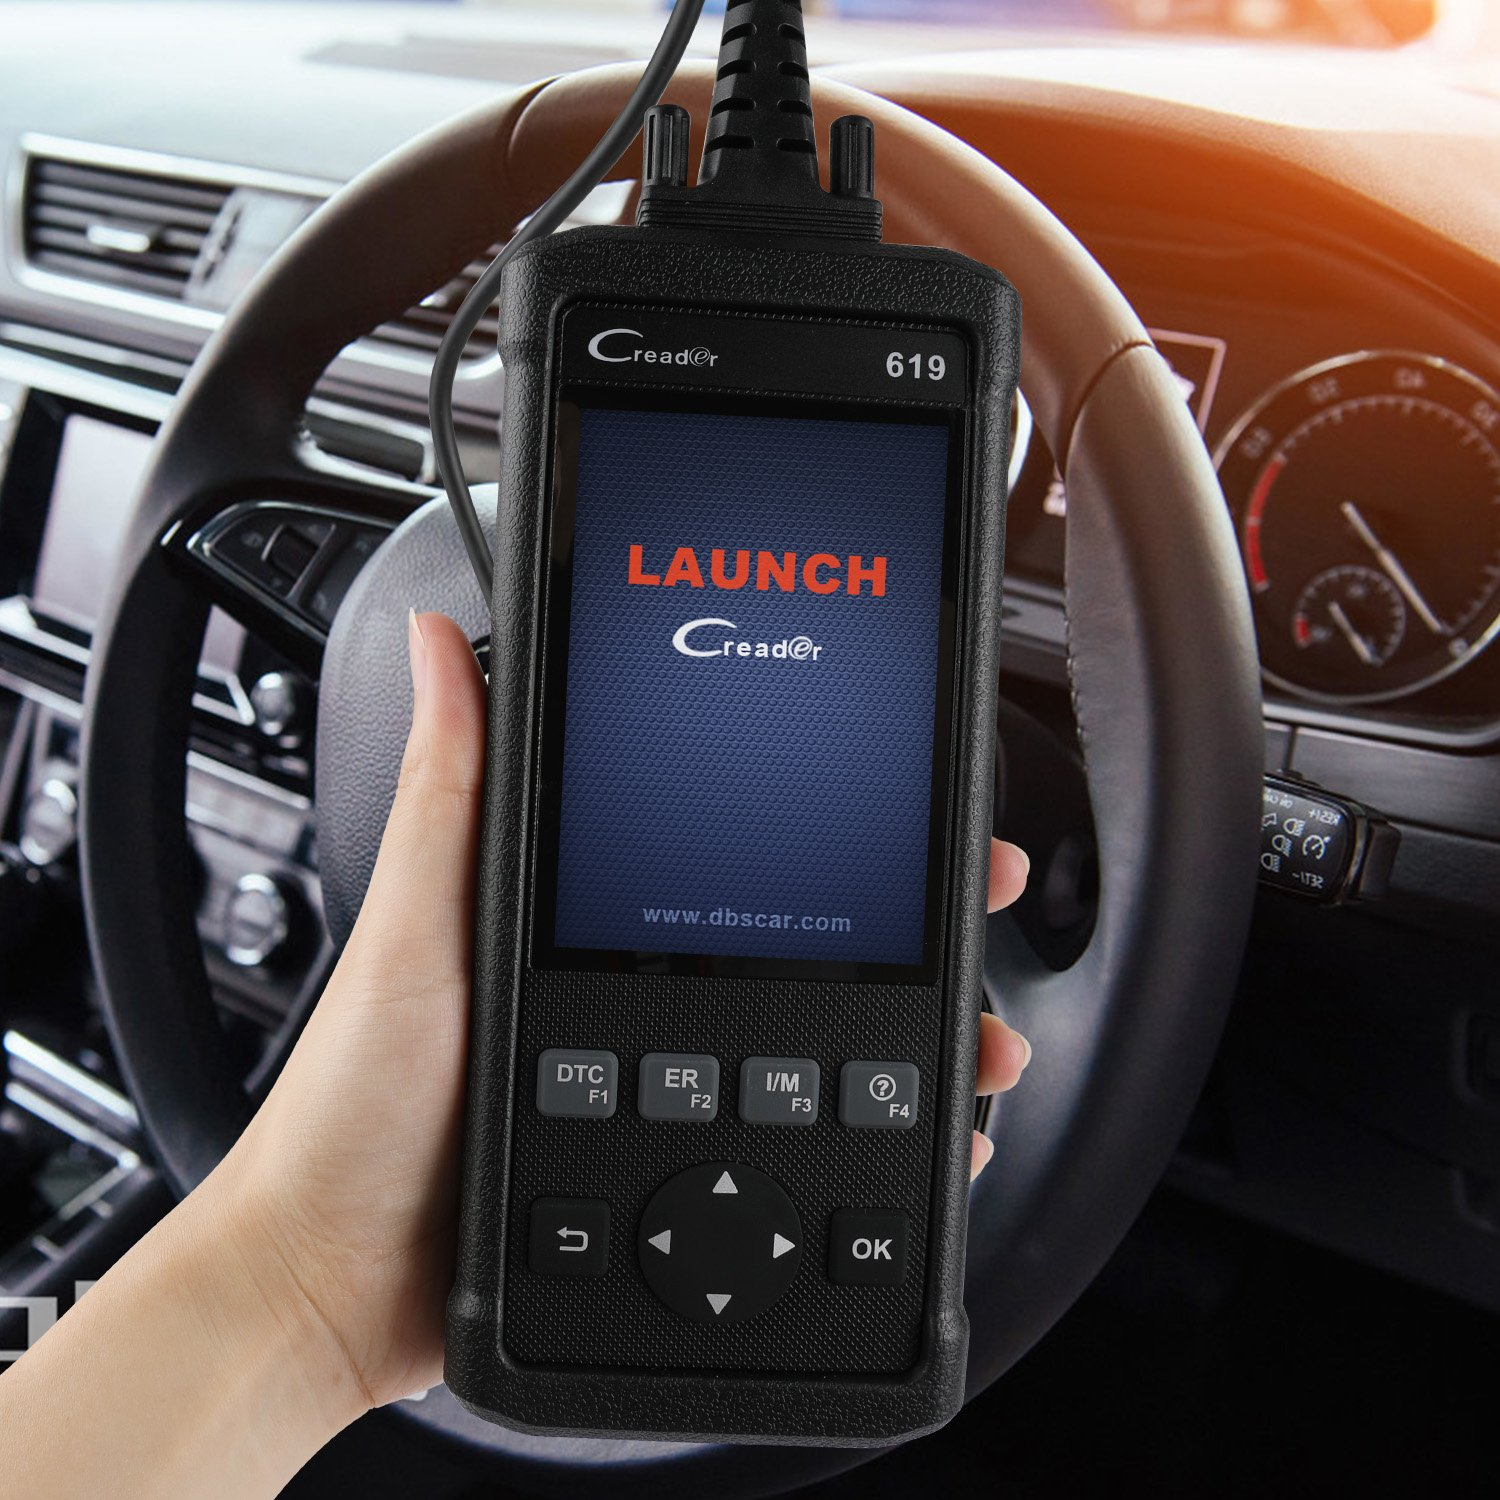 Launch Creader CR619 Automotive ABS SRS Diagnostic Scan Tool Auto Obd ii OBD2 Scanner Car Code Reader Check Engine SRS ABS Airbag Light Fault Code Reader with EVAP O2 On-board Monitor Test by LAUNCH (Image #8)